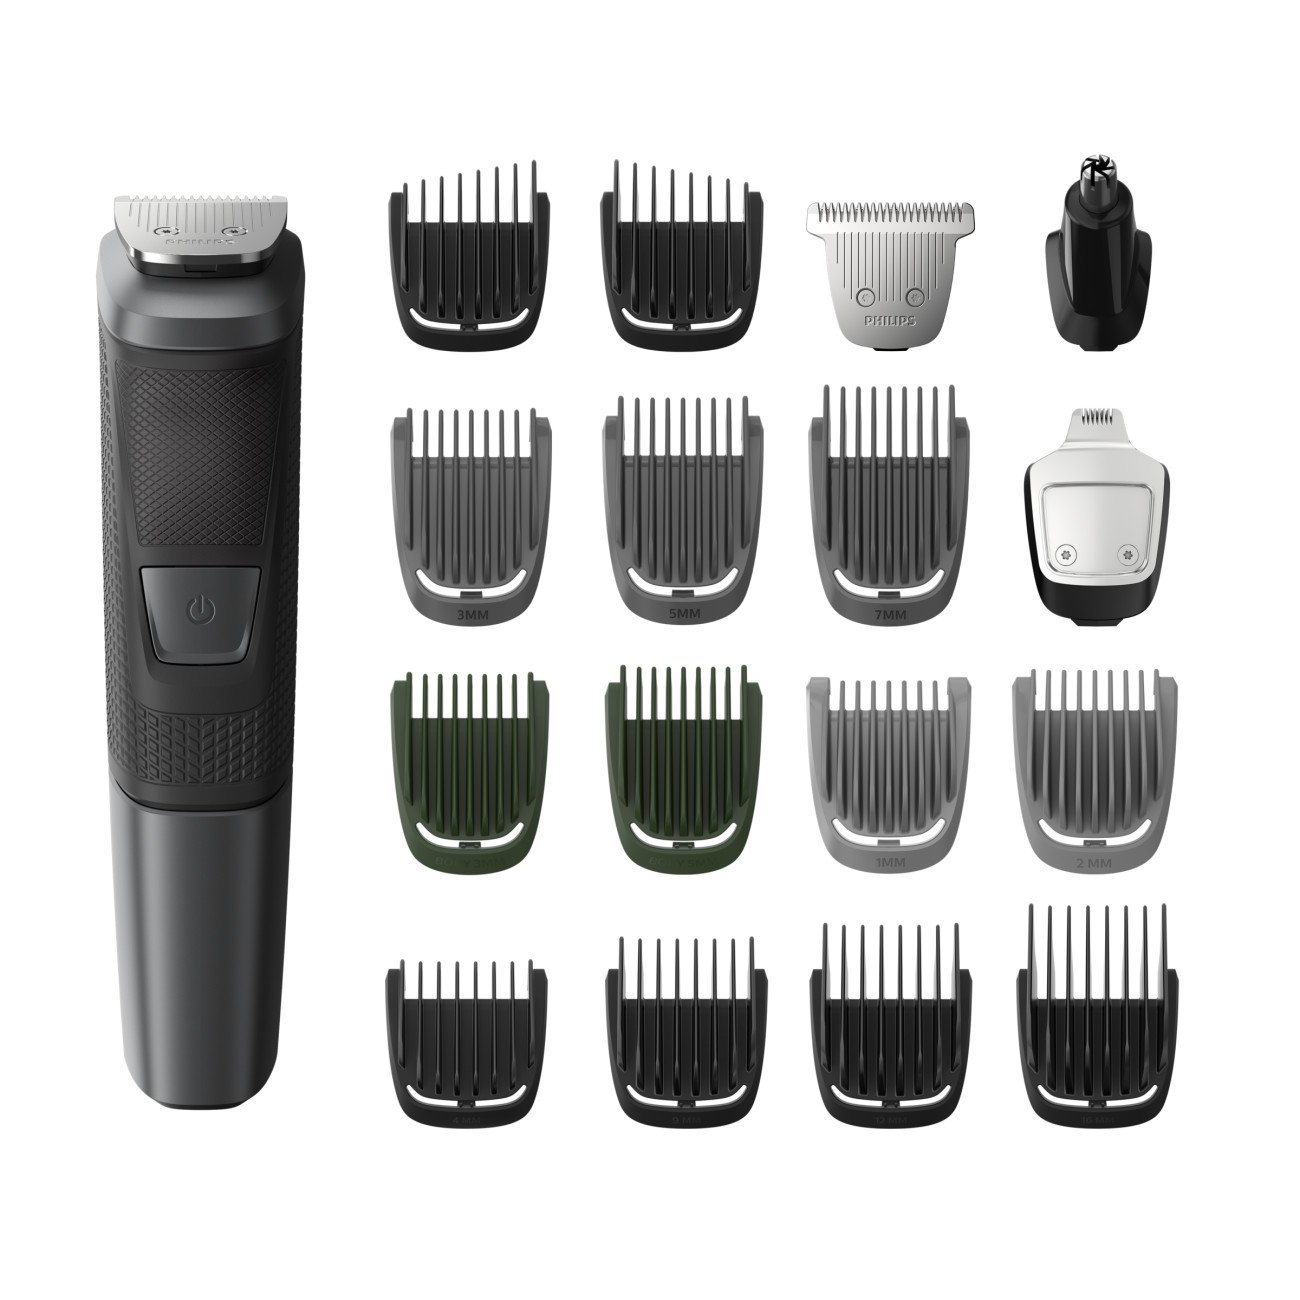 bc31727cedb9 Philips Norelco Multigroom 5000, with Storage Case MG5760/40